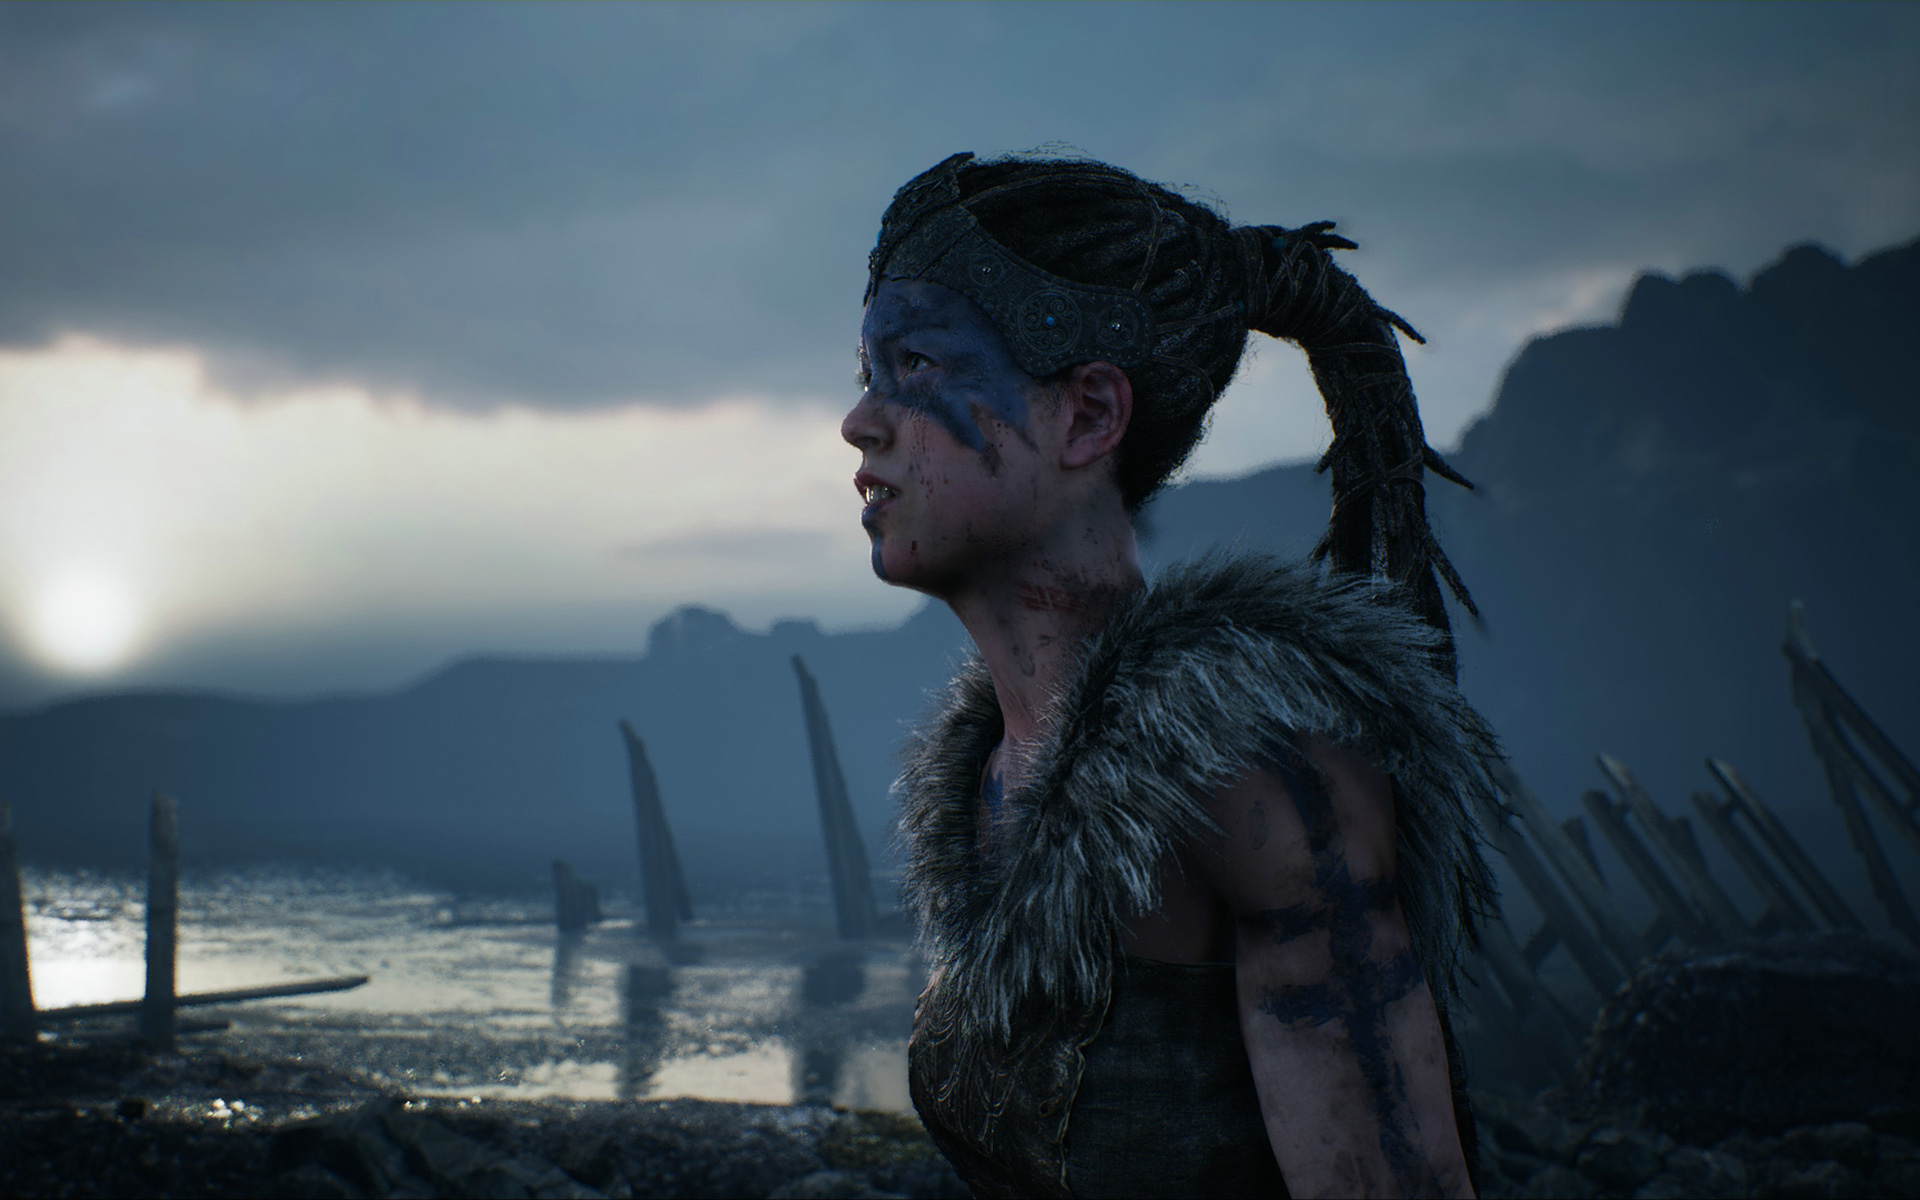 Free Hellblade: Senua's Sacrifice Wallpaper in 1920x1200